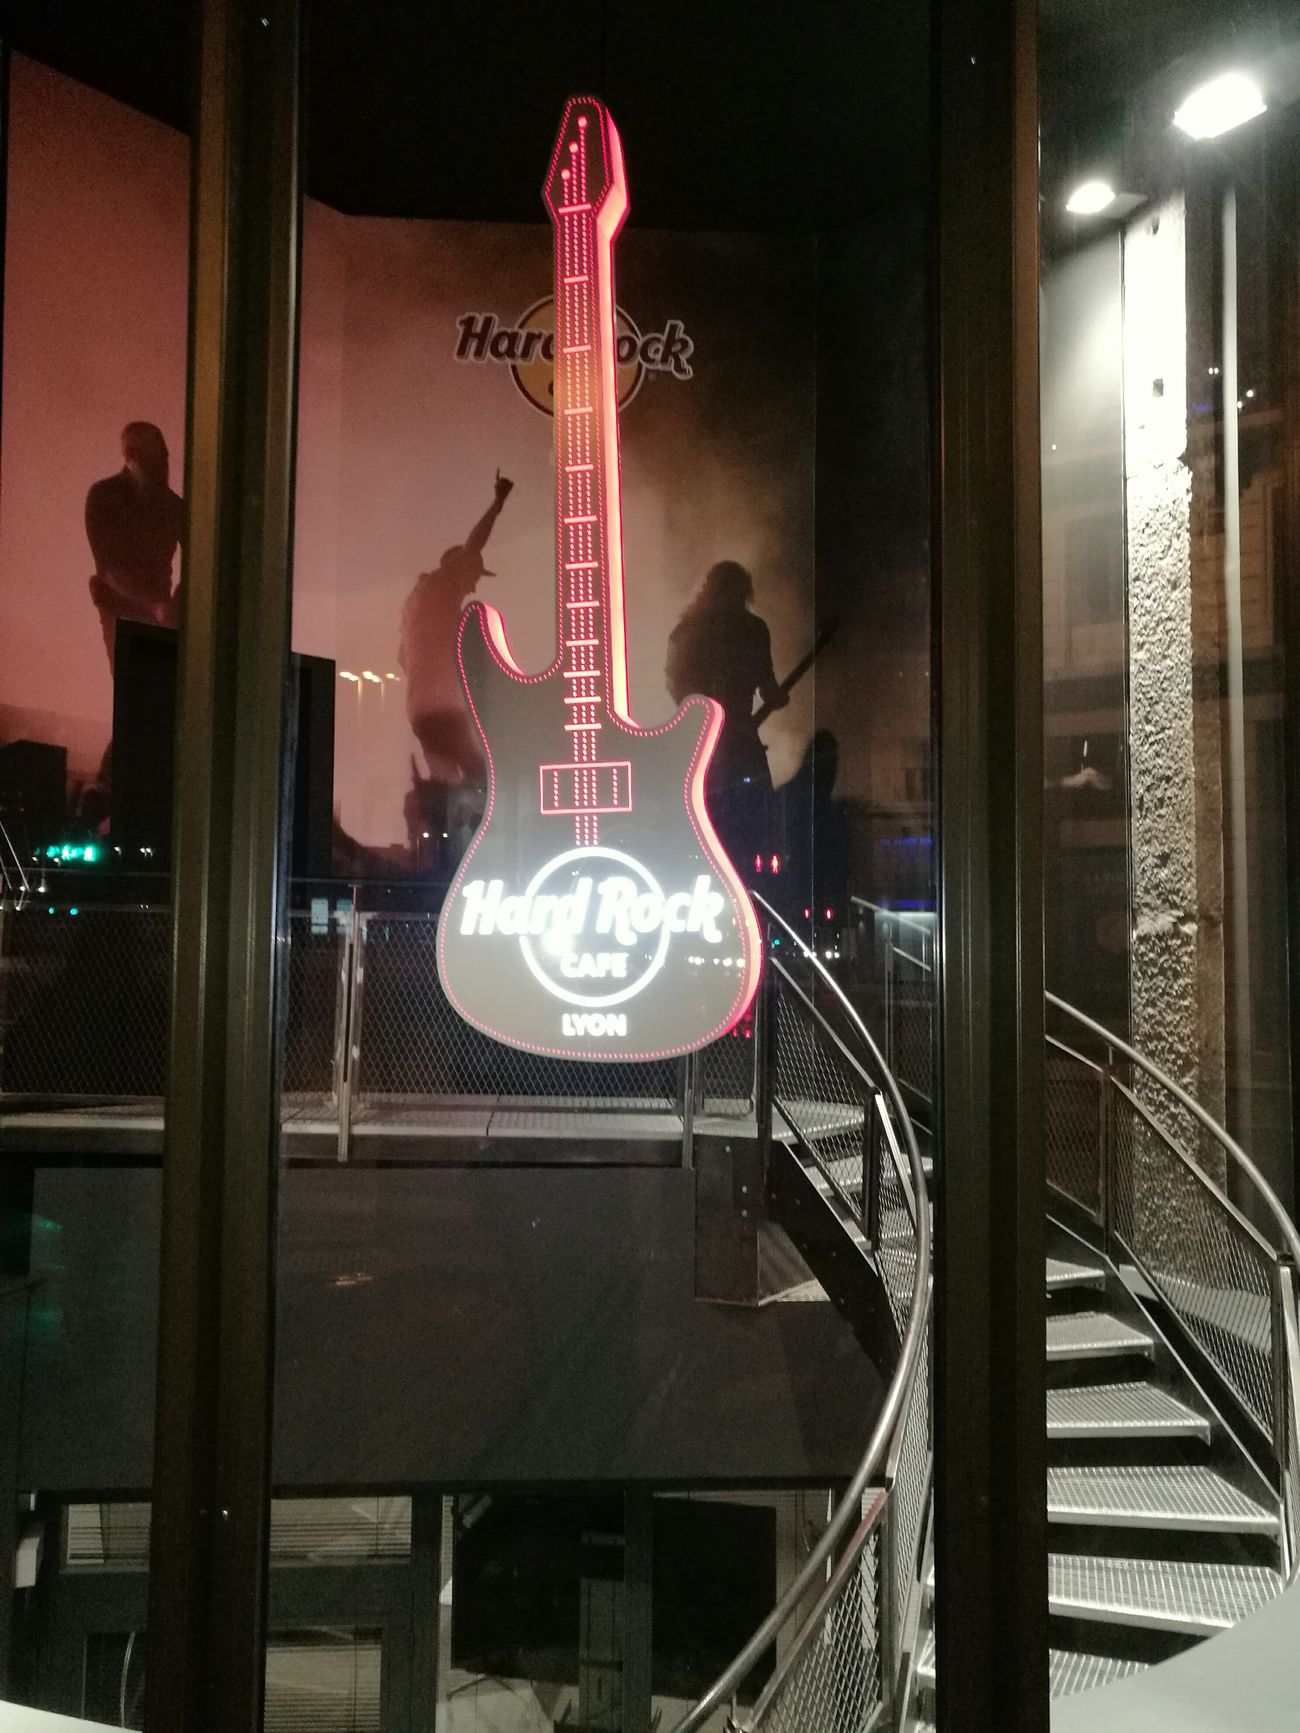 Hard Rock Cafe Lyon France Great Atmosphere Great Drink Bar - Drink Establishment Reflection Illuminated Music Saturdaynight